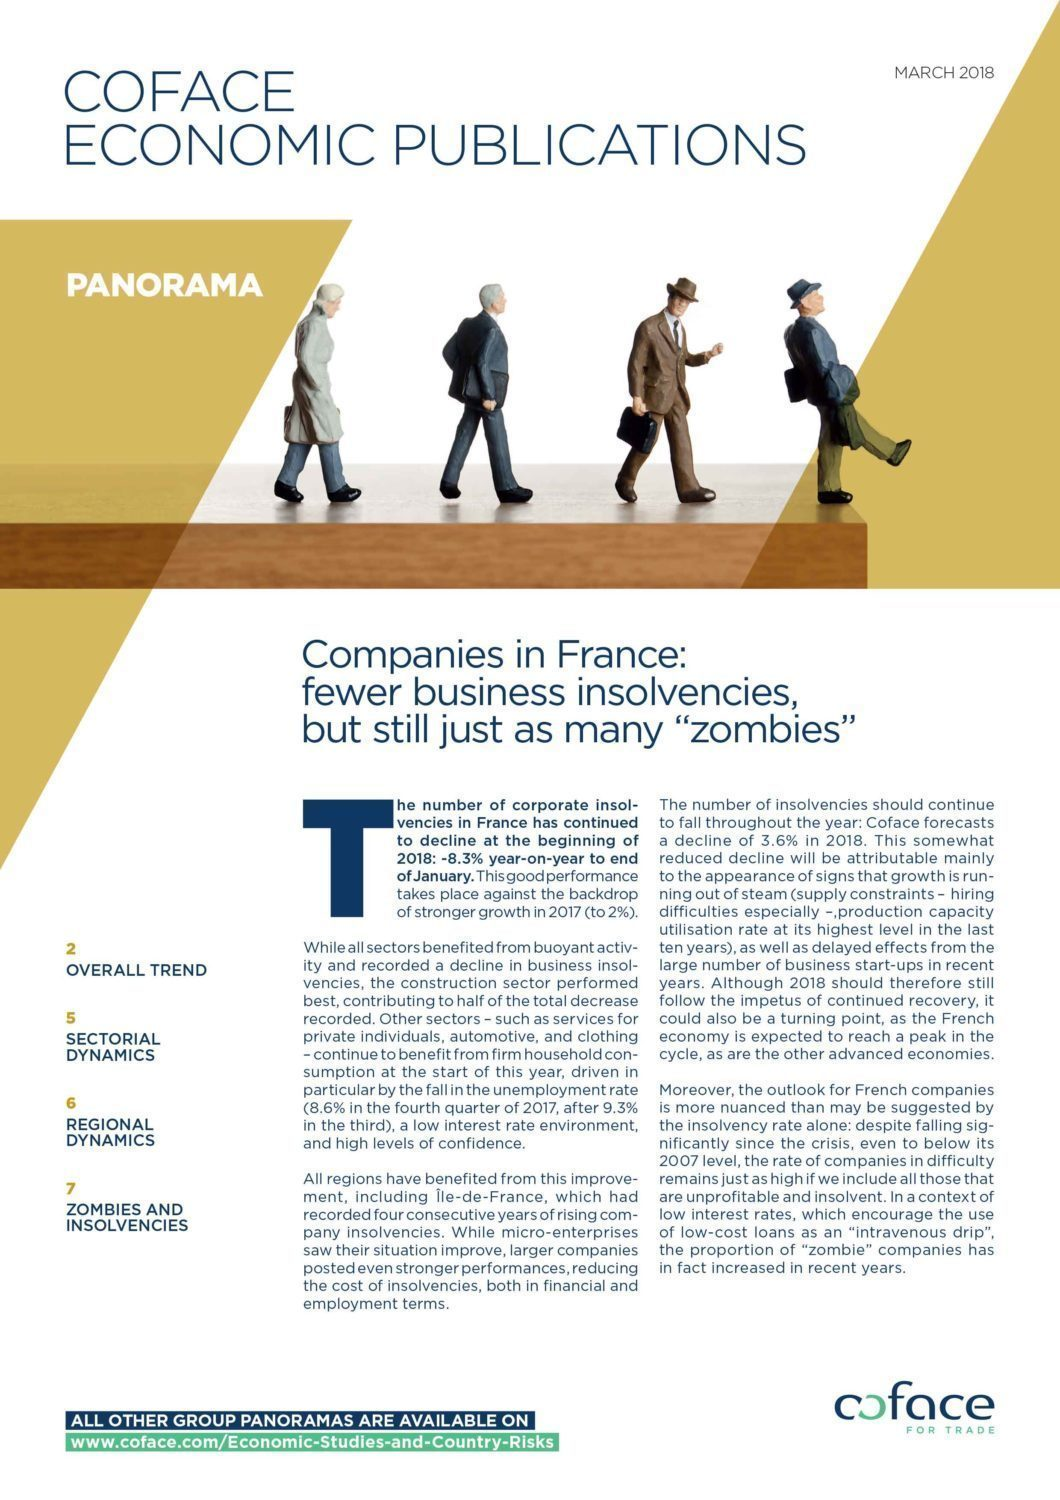 """Companies in France: fewer business insolvencies, but still just as many """"zombies"""""""